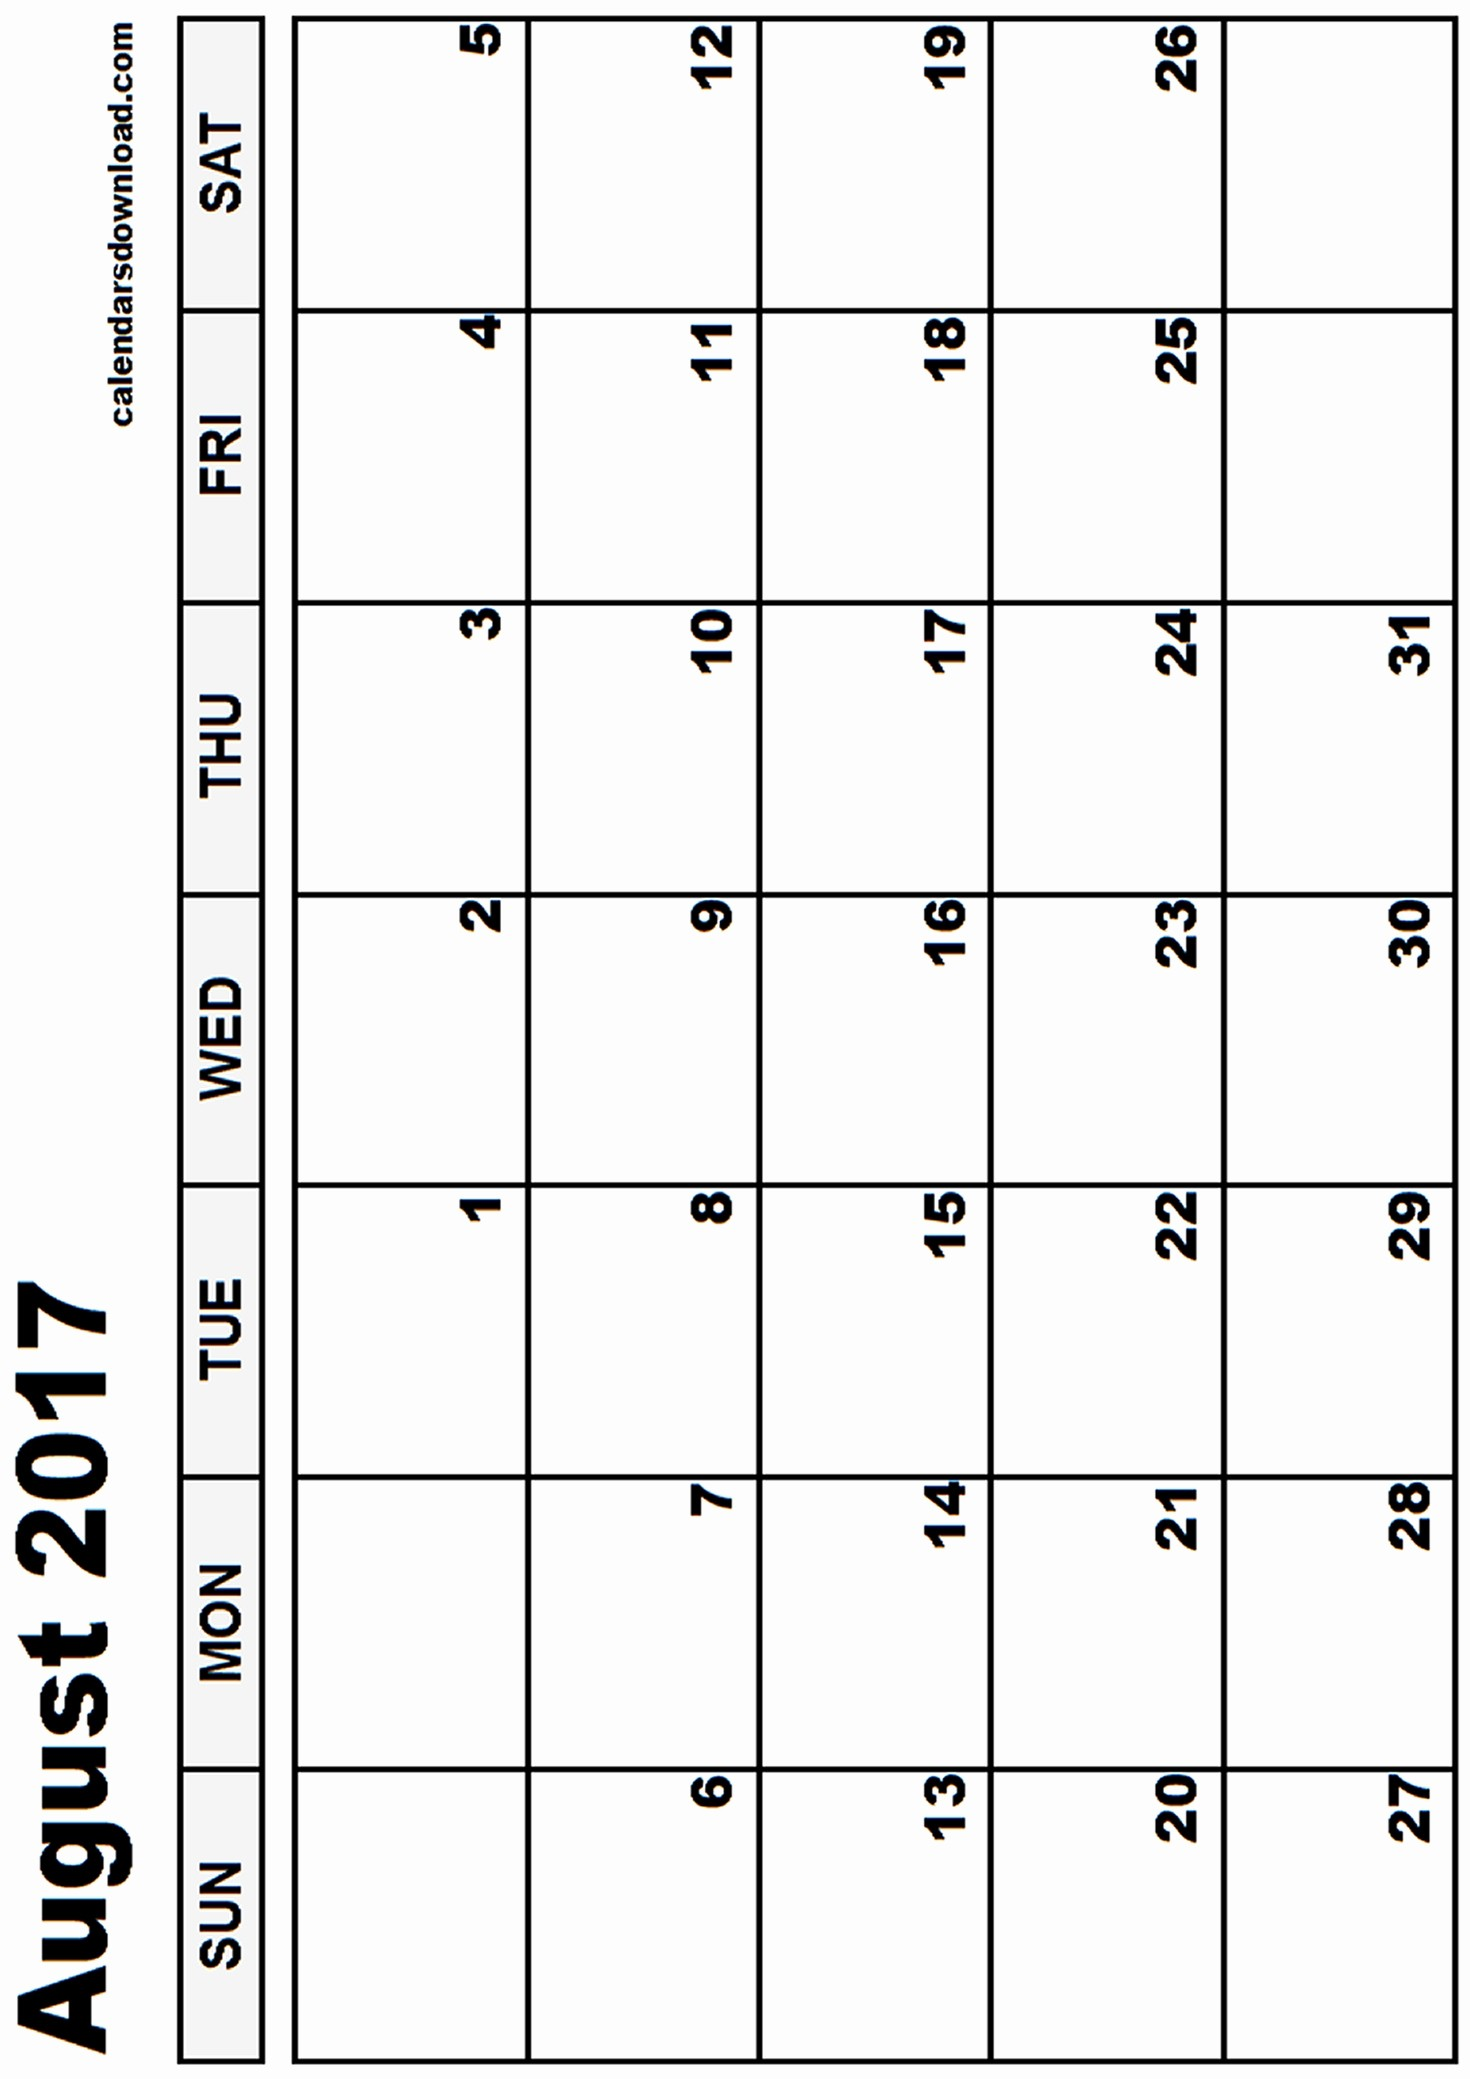 Blank Calendar Template August 2017 Unique August 2017 Calendar